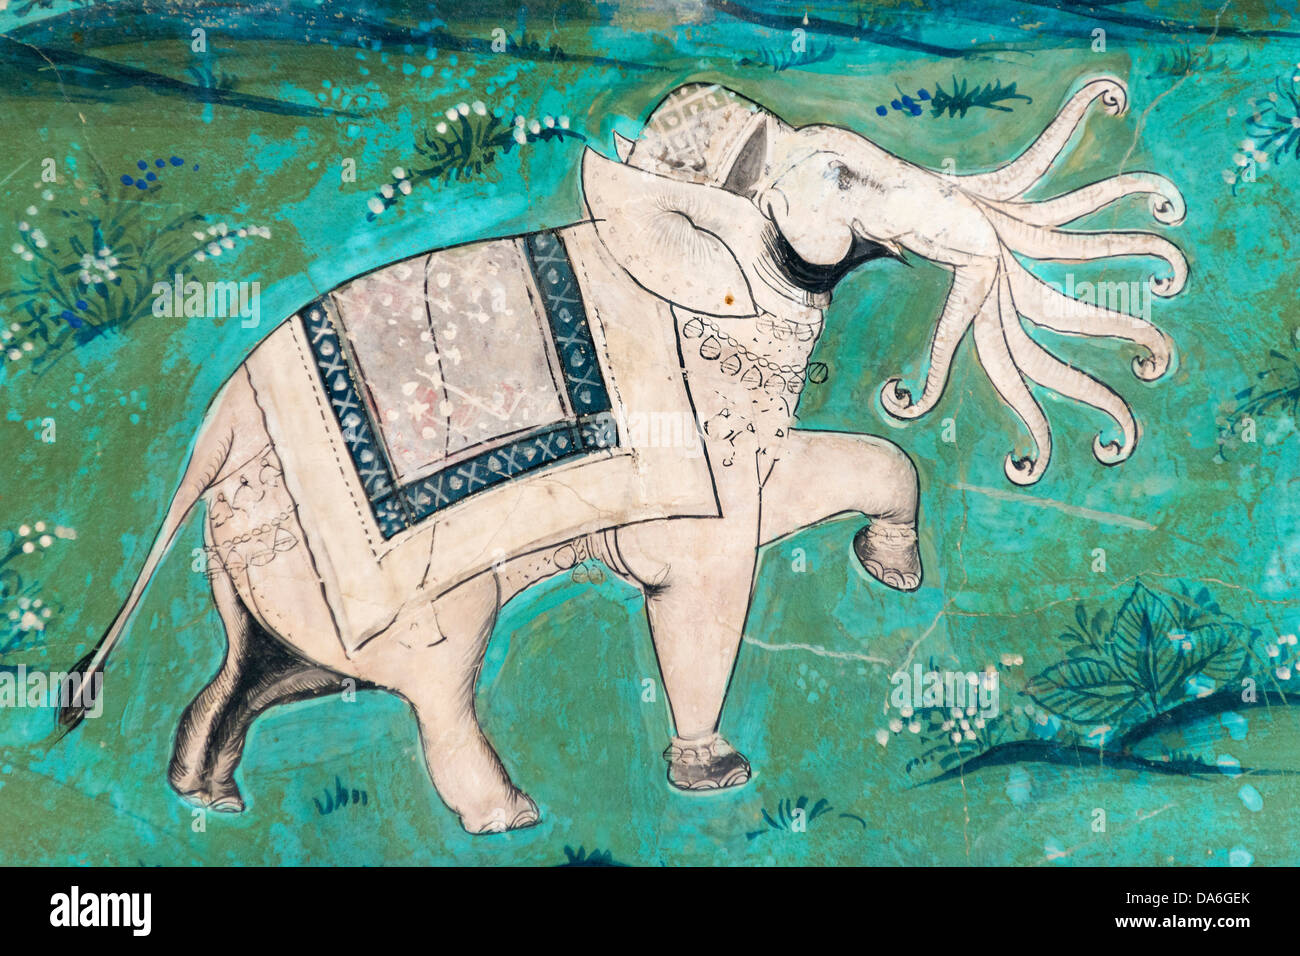 Airavata Or Ardha Matanga, A Mythical White Elephant With Seven Trunks,  Wall Painting